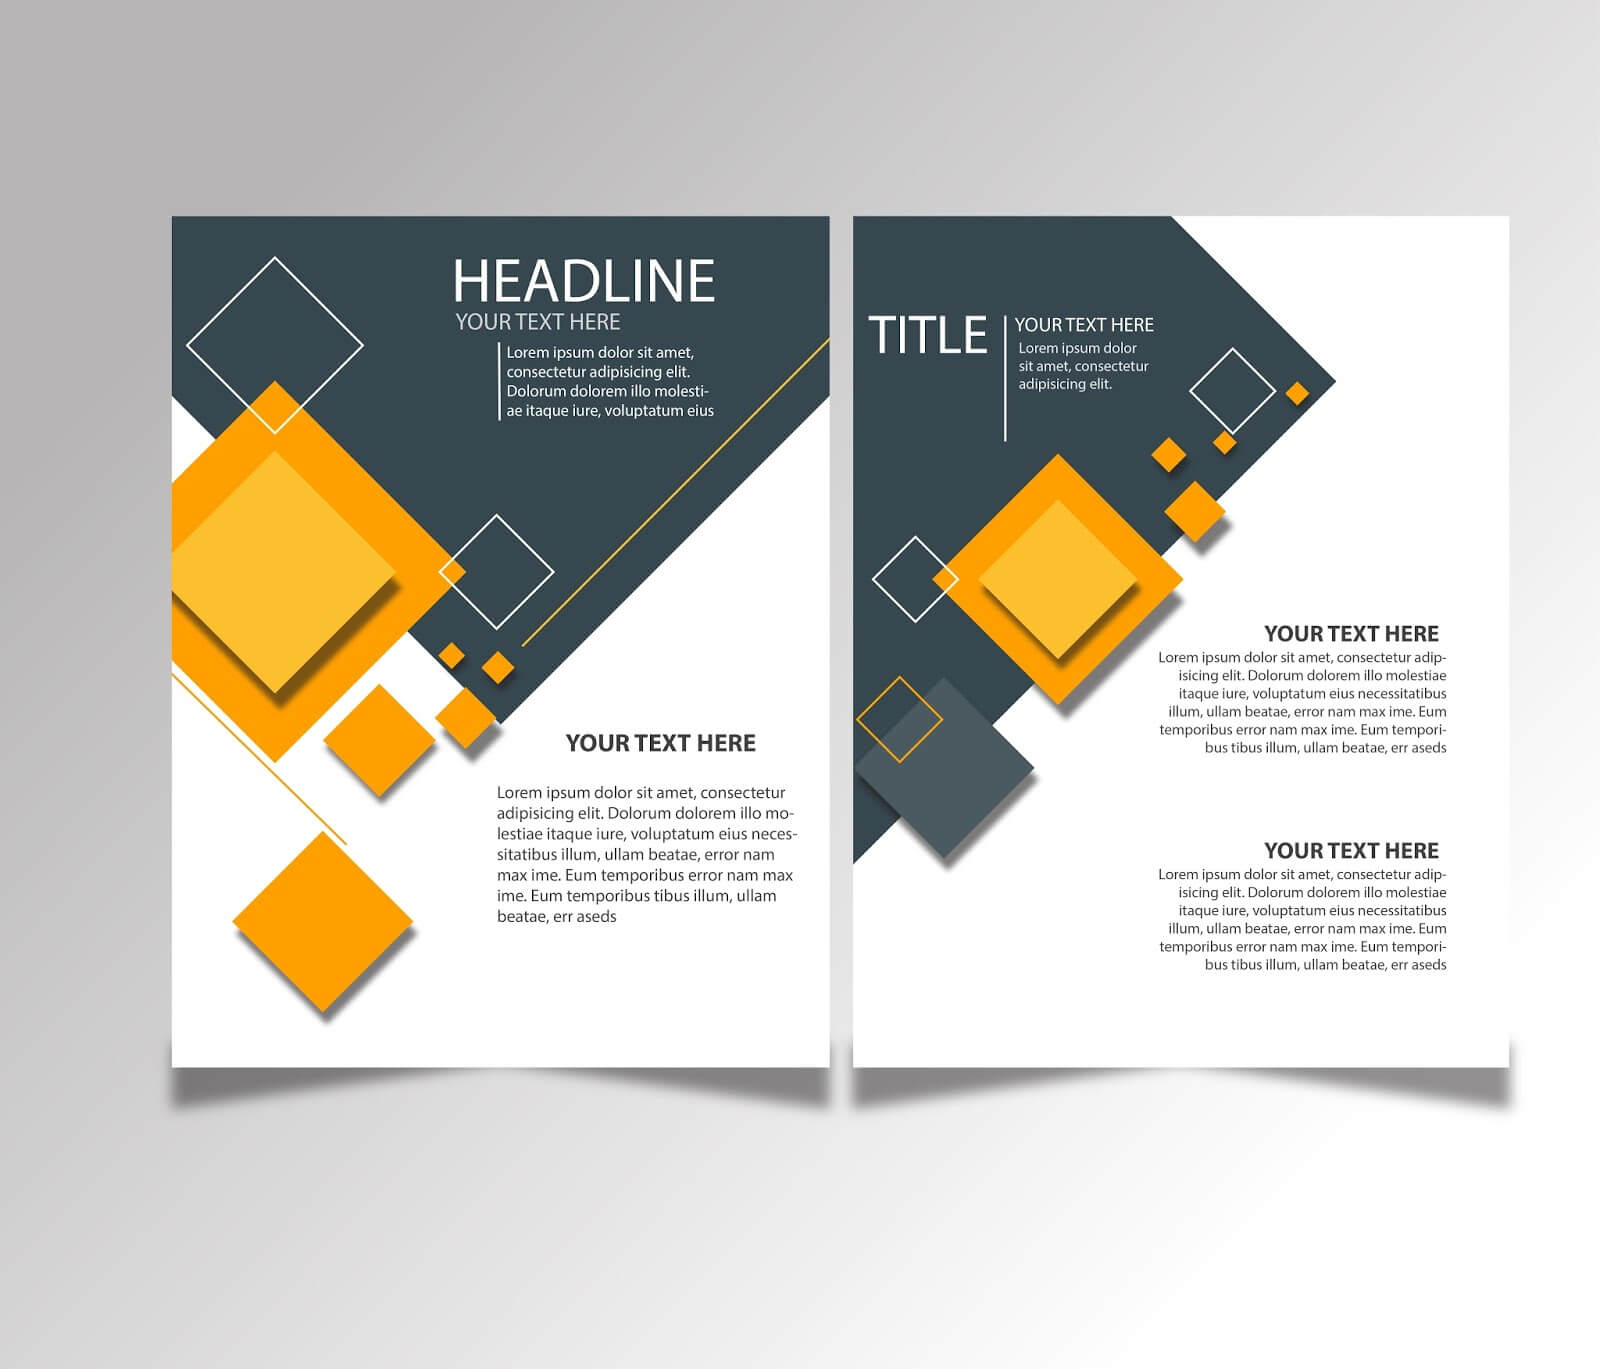 Free Download Brochure Design Templates Ai Files - Ideosprocess Intended For Ai Brochure Templates Free Download